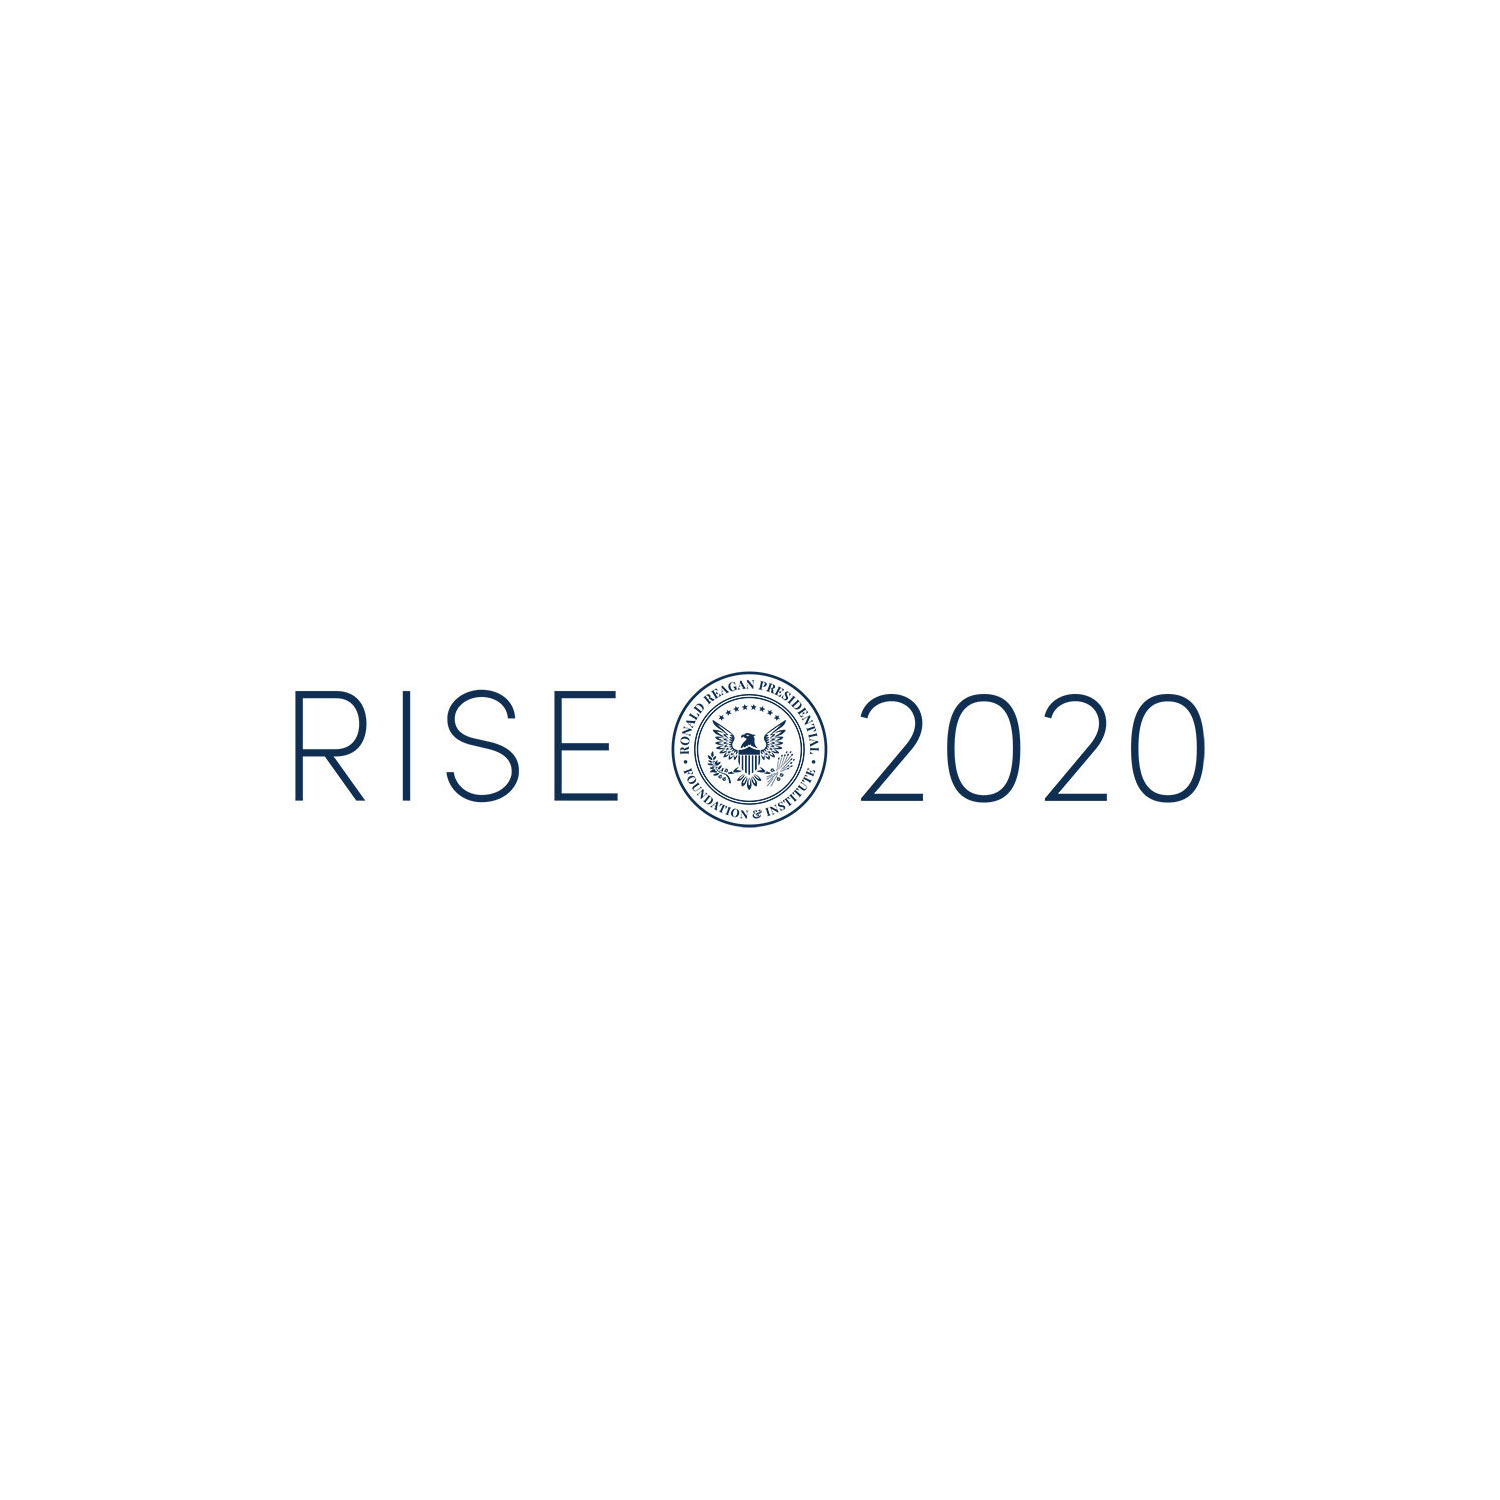 Event - RISE 2020